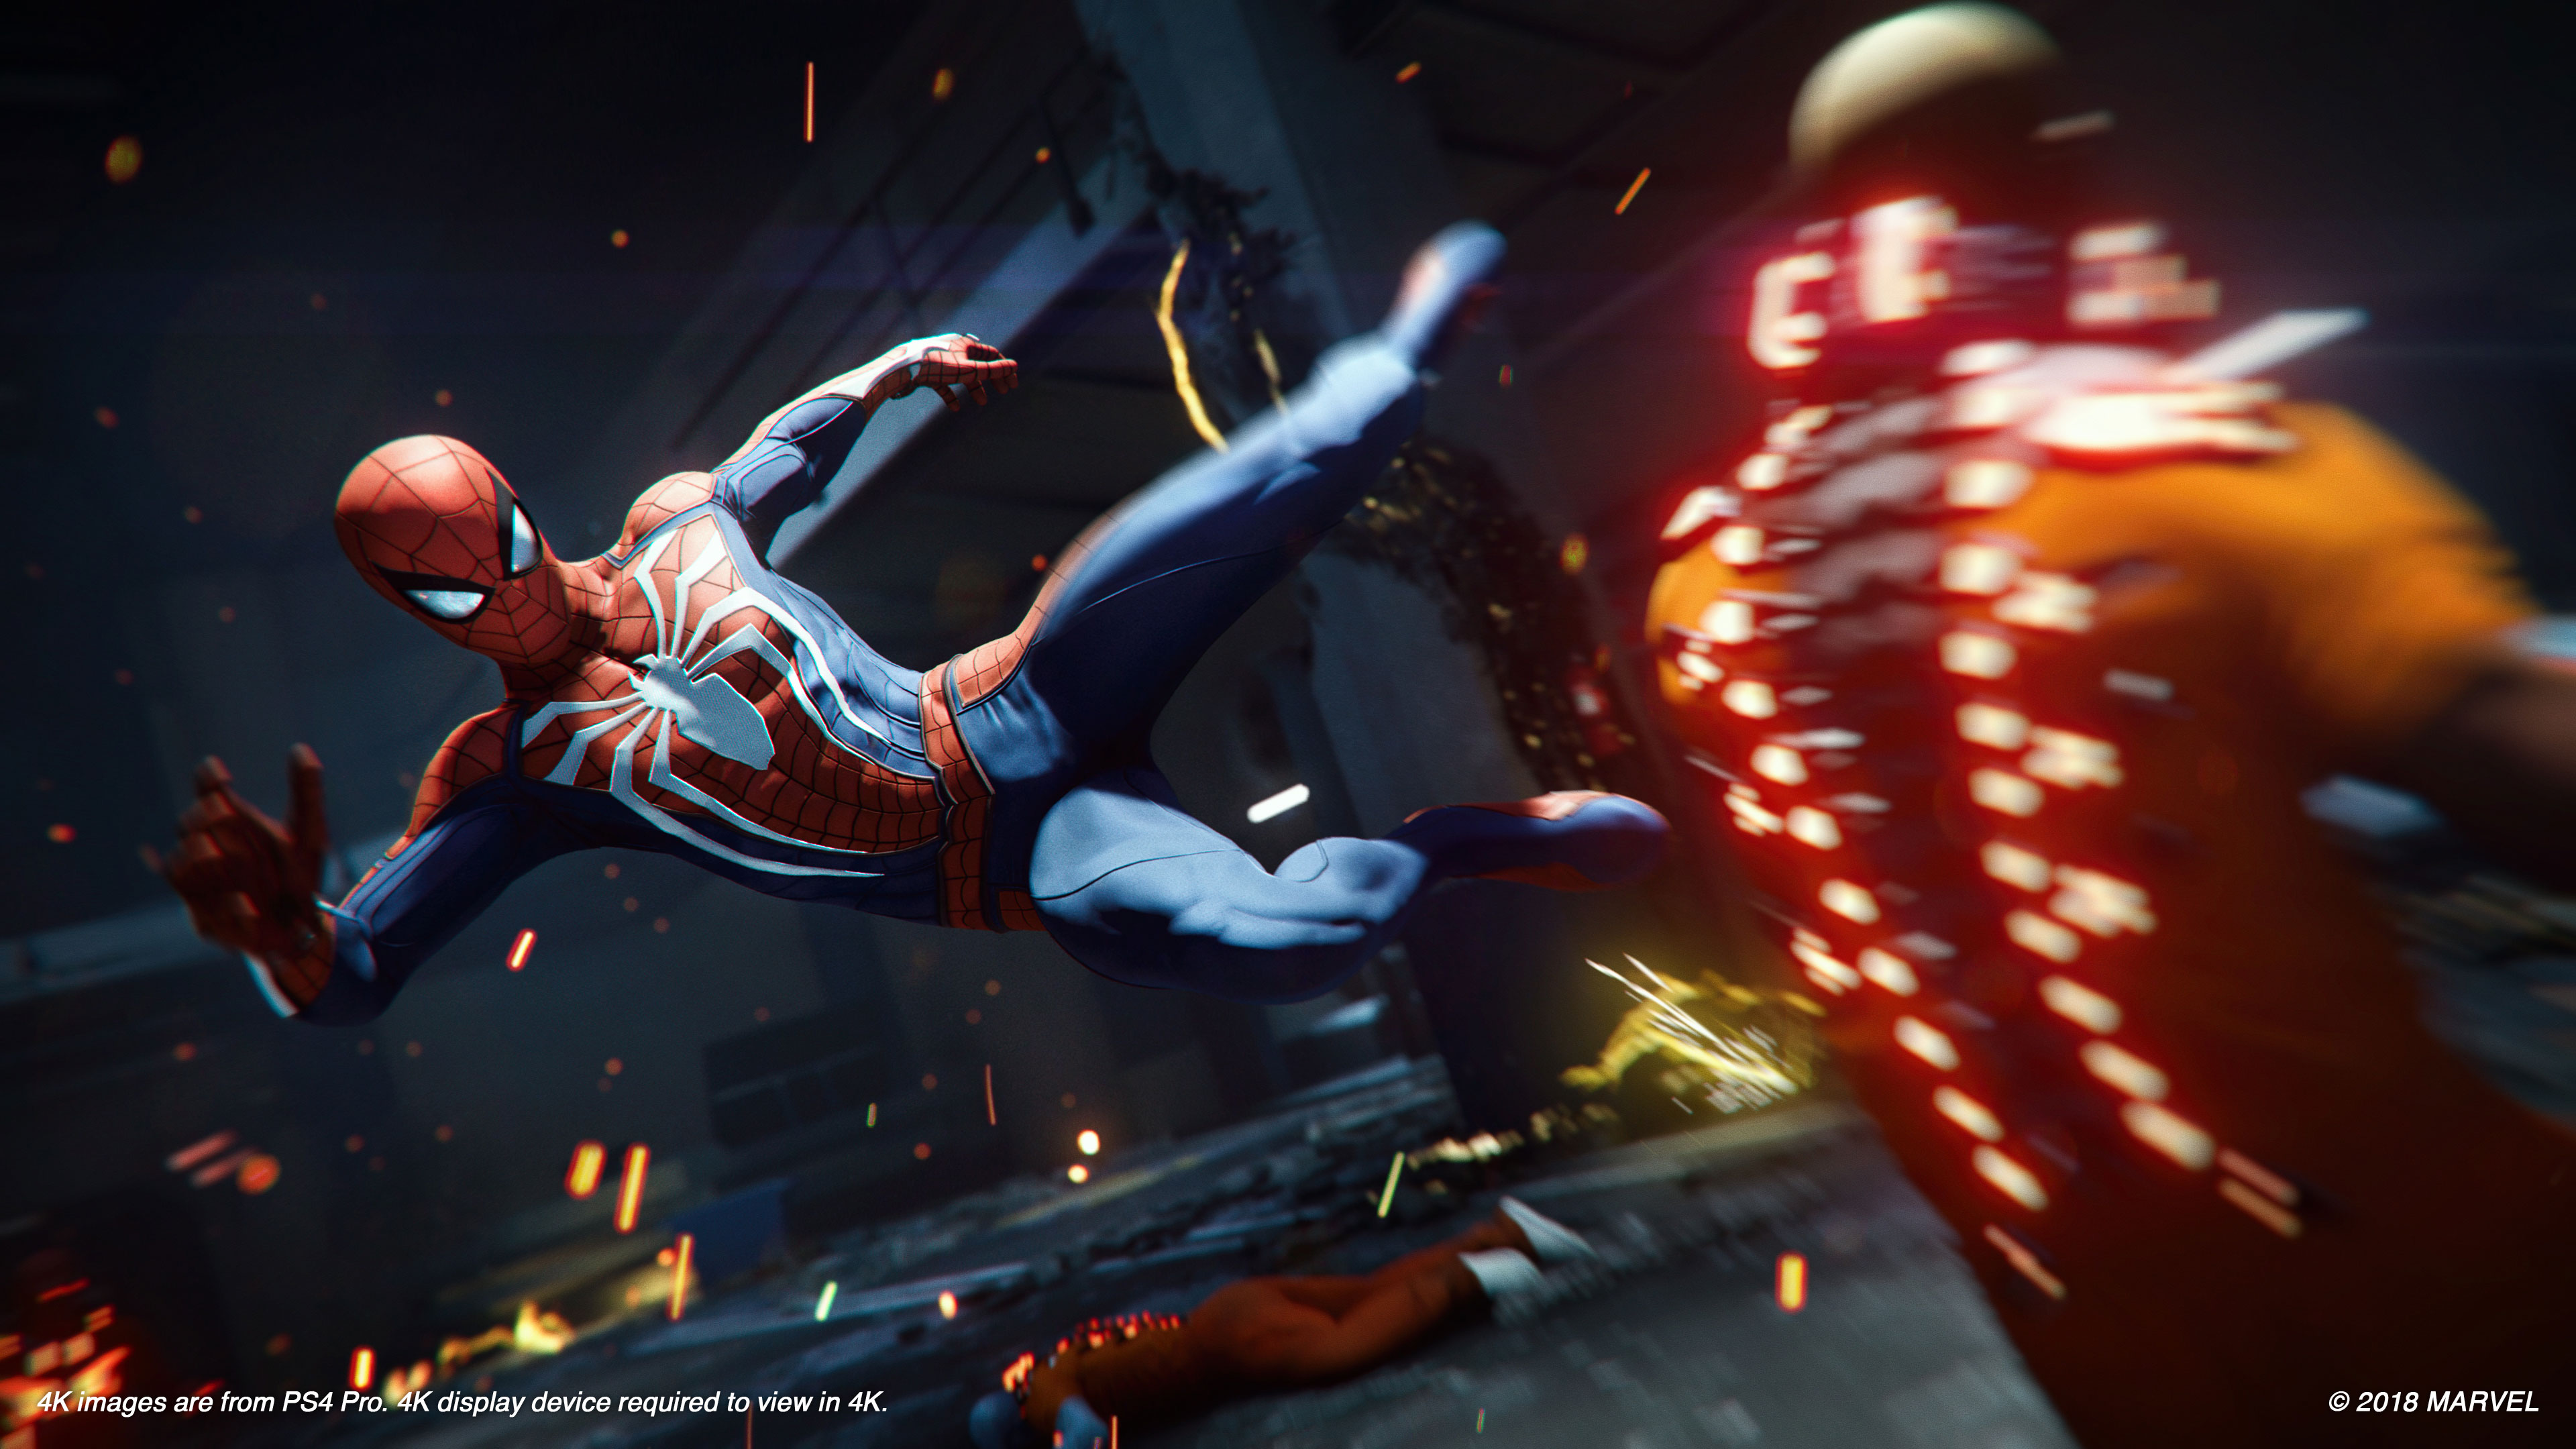 Review - Marvel's Spider-Man spins an intricate story, but